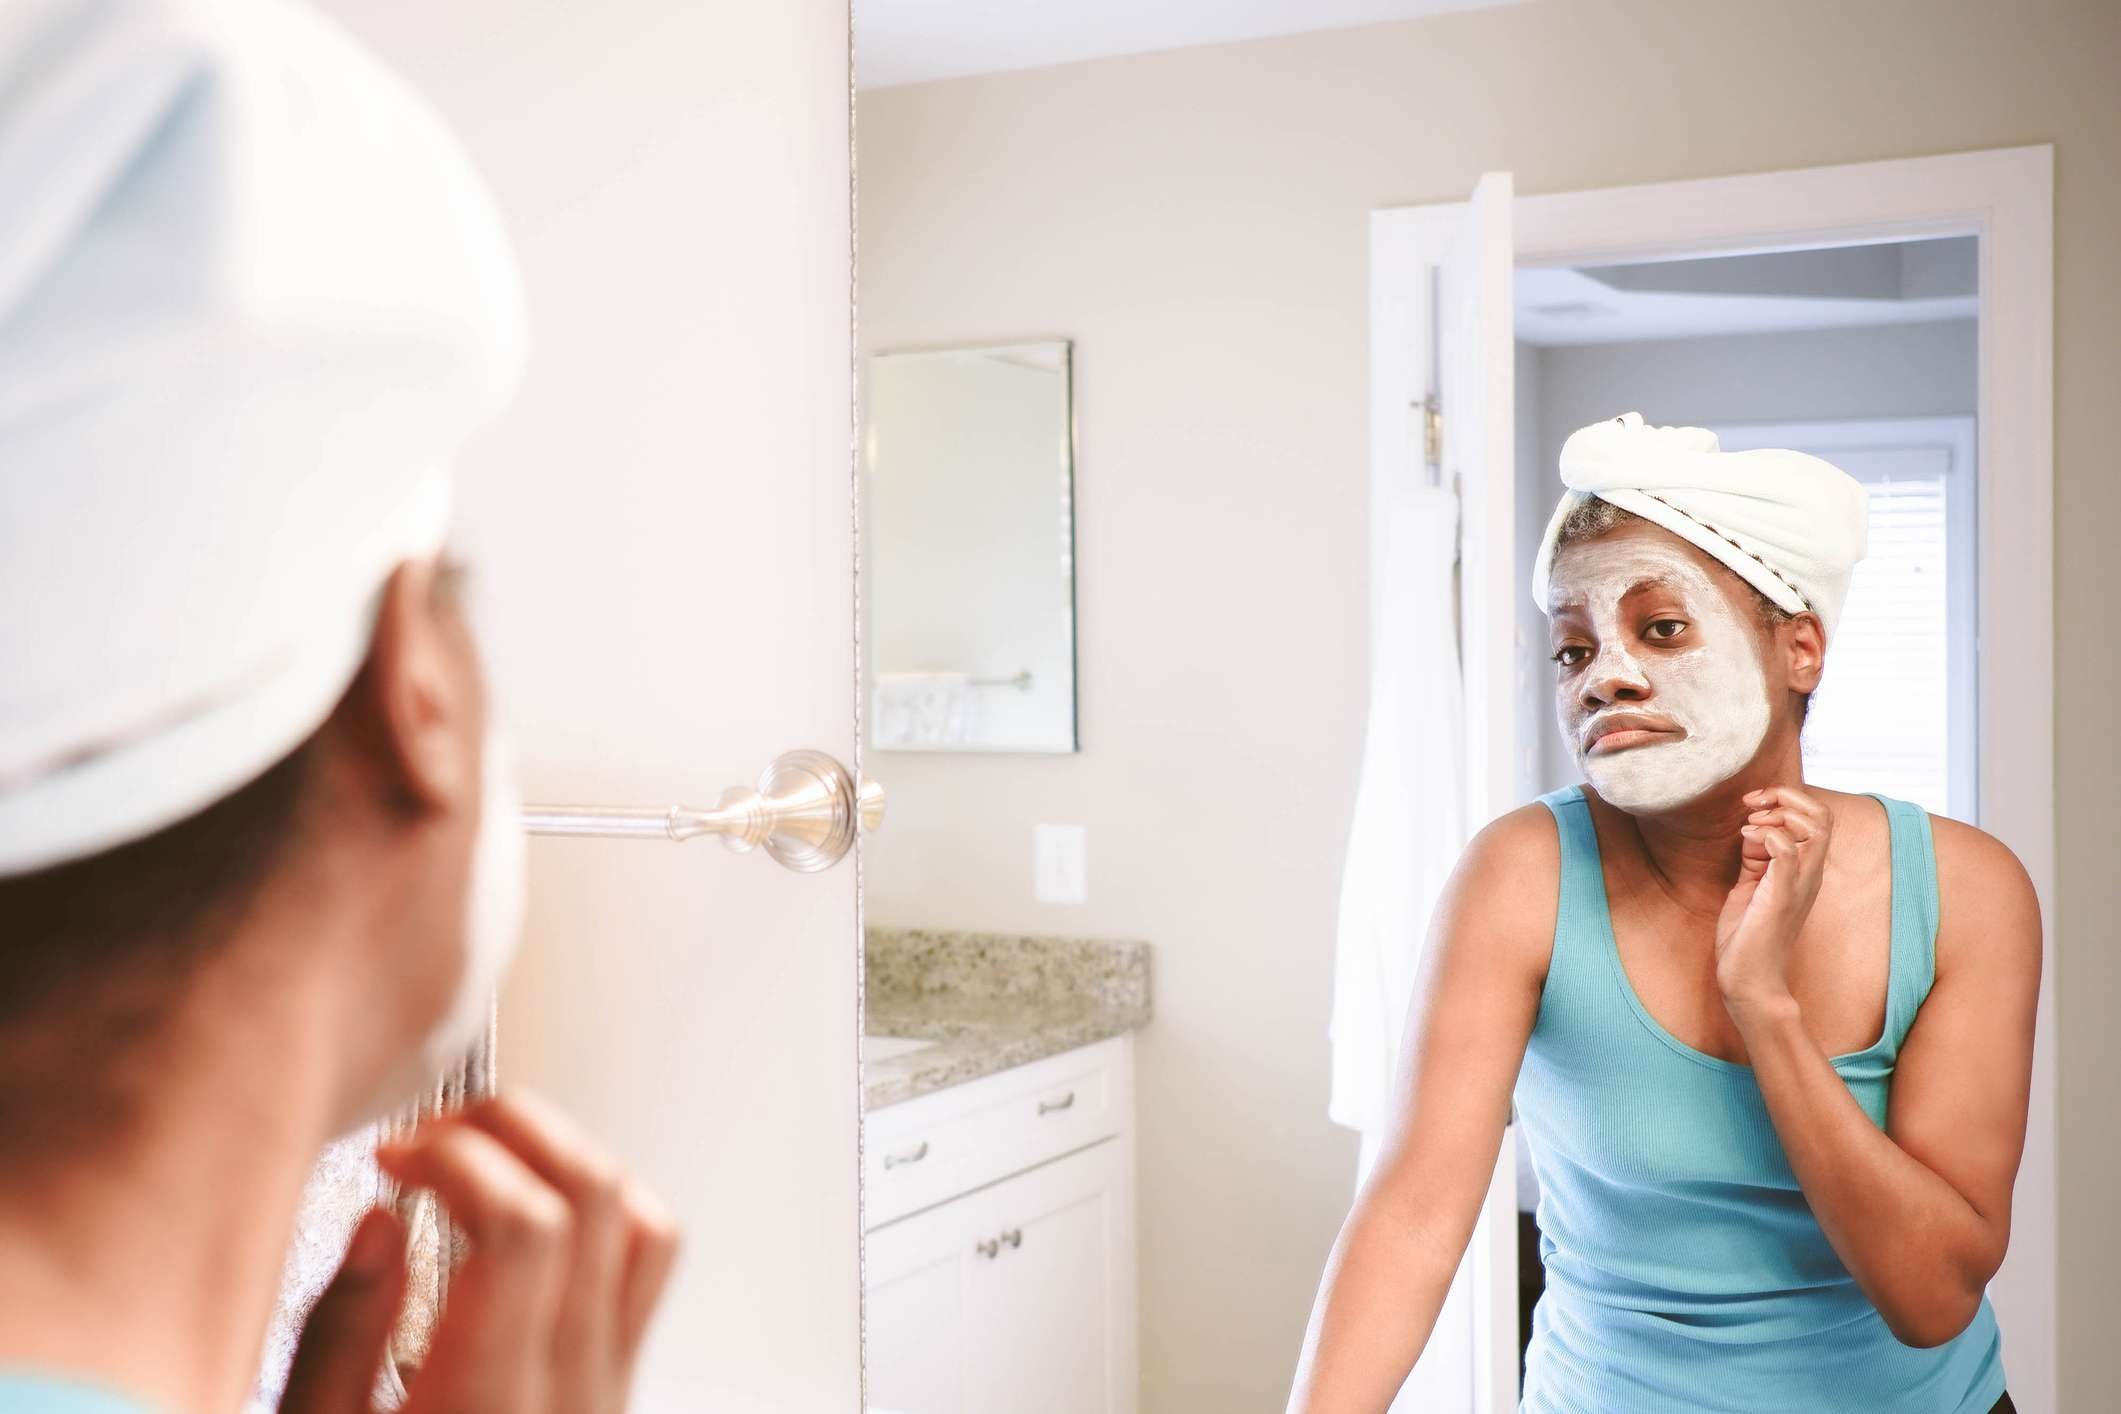 A black woman with clay facial mask looks at herself in the mirror.